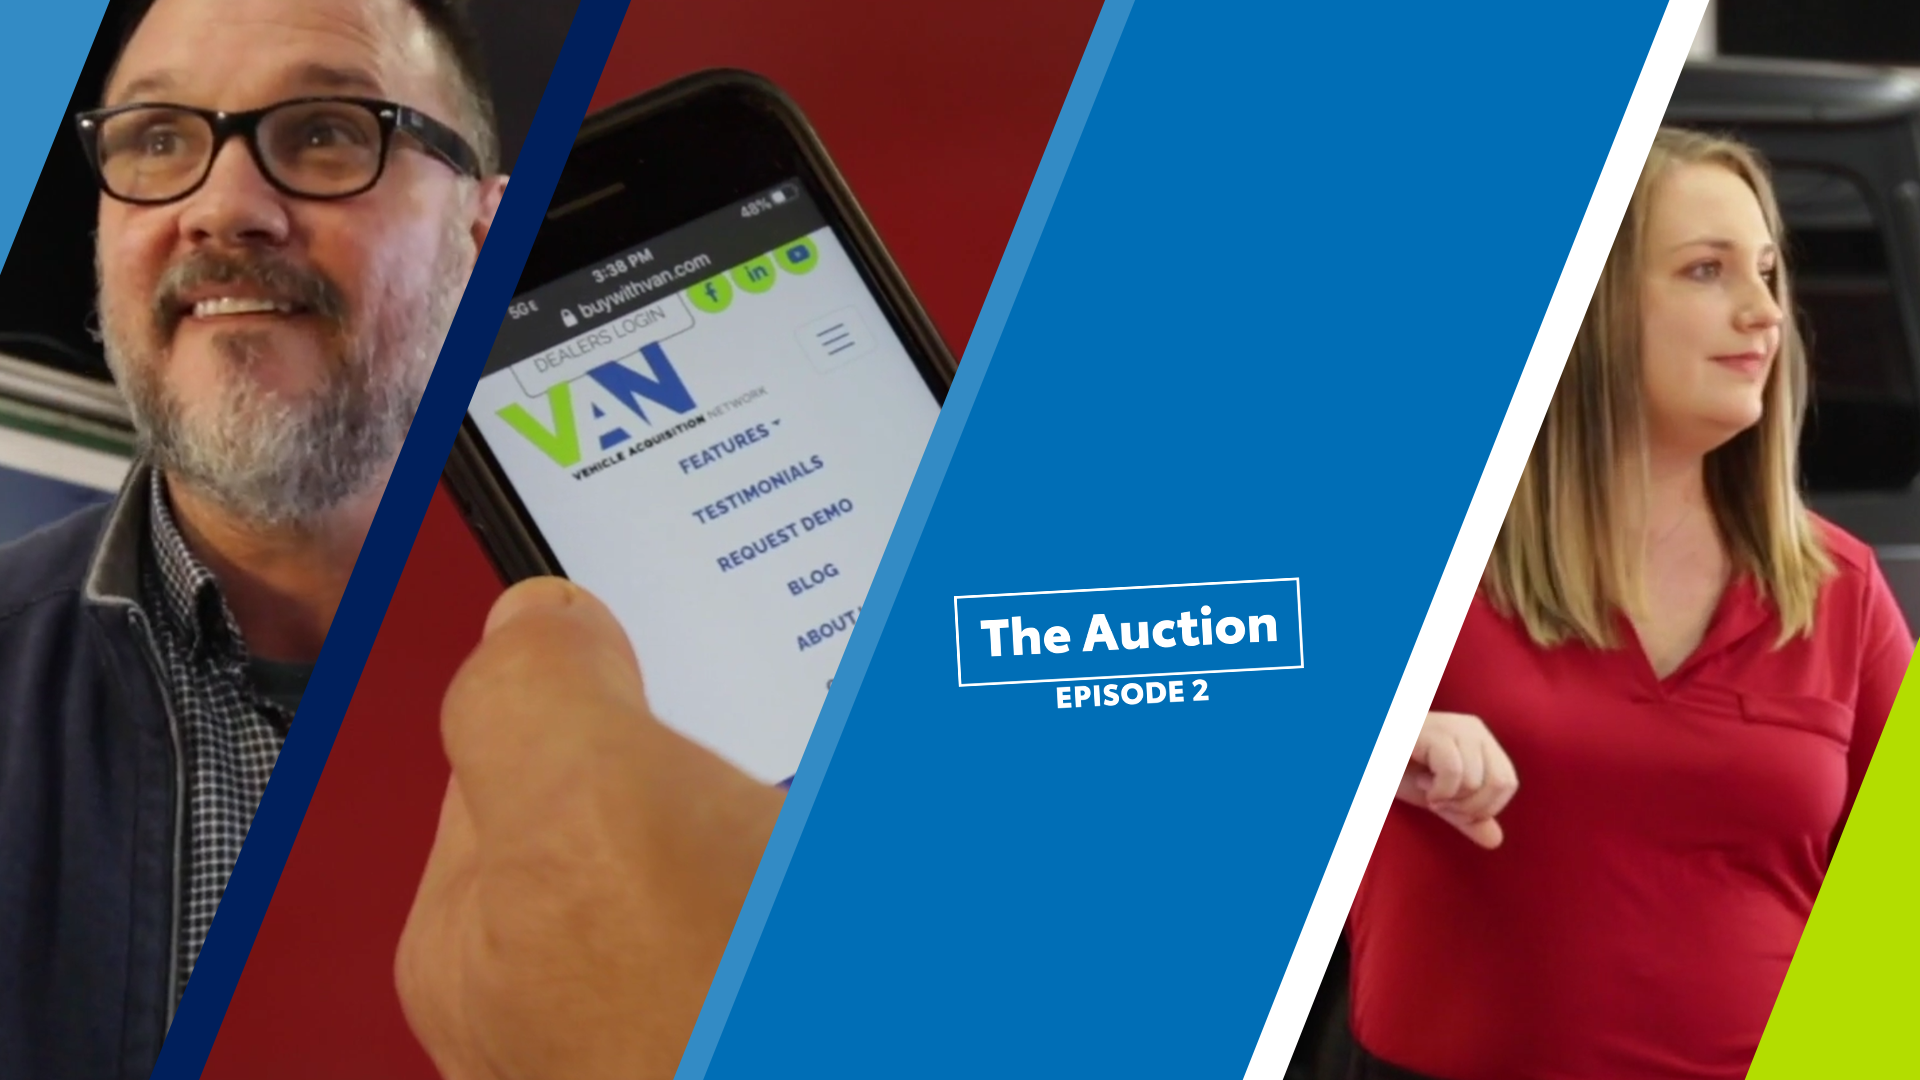 The Auction, Episode 2